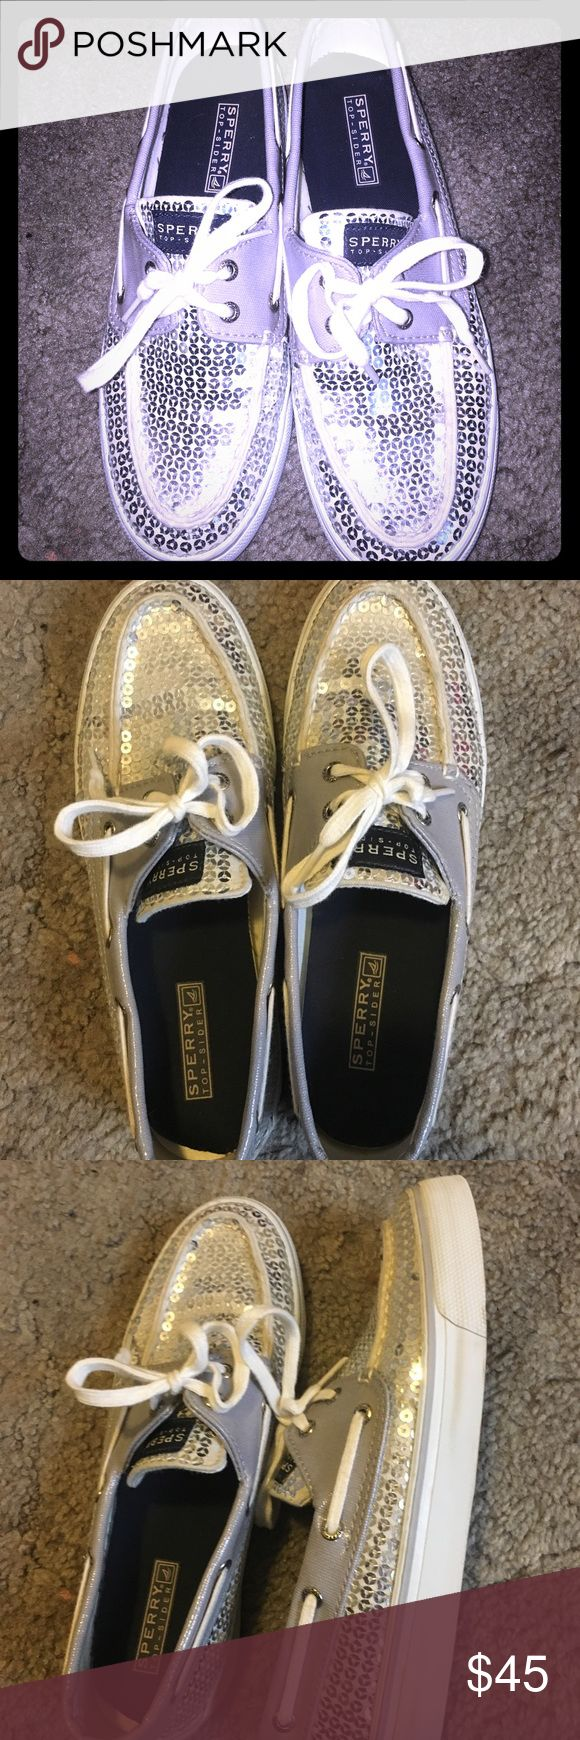 ☃️SALE! ❄️ Sequins Sperry's In excellent condition! They're a little too big on me. Not firm on price so please make an offer! 😊 Sperry Shoes